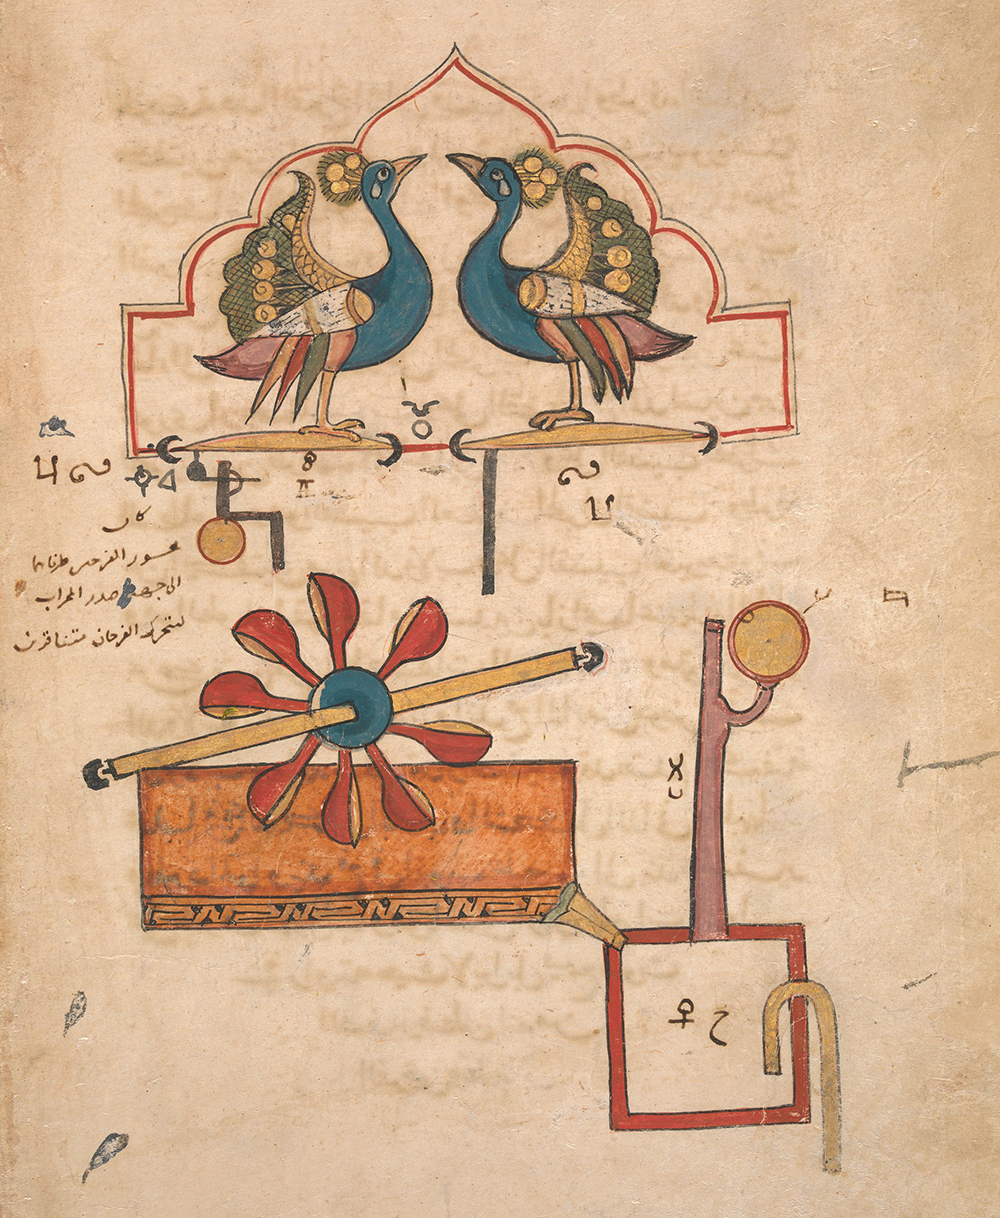 Water Clock of the Peacocks, miniature from a 1315 edition of al-Jazari's Book of Knowledge of Ingenious Mechanical Devices.